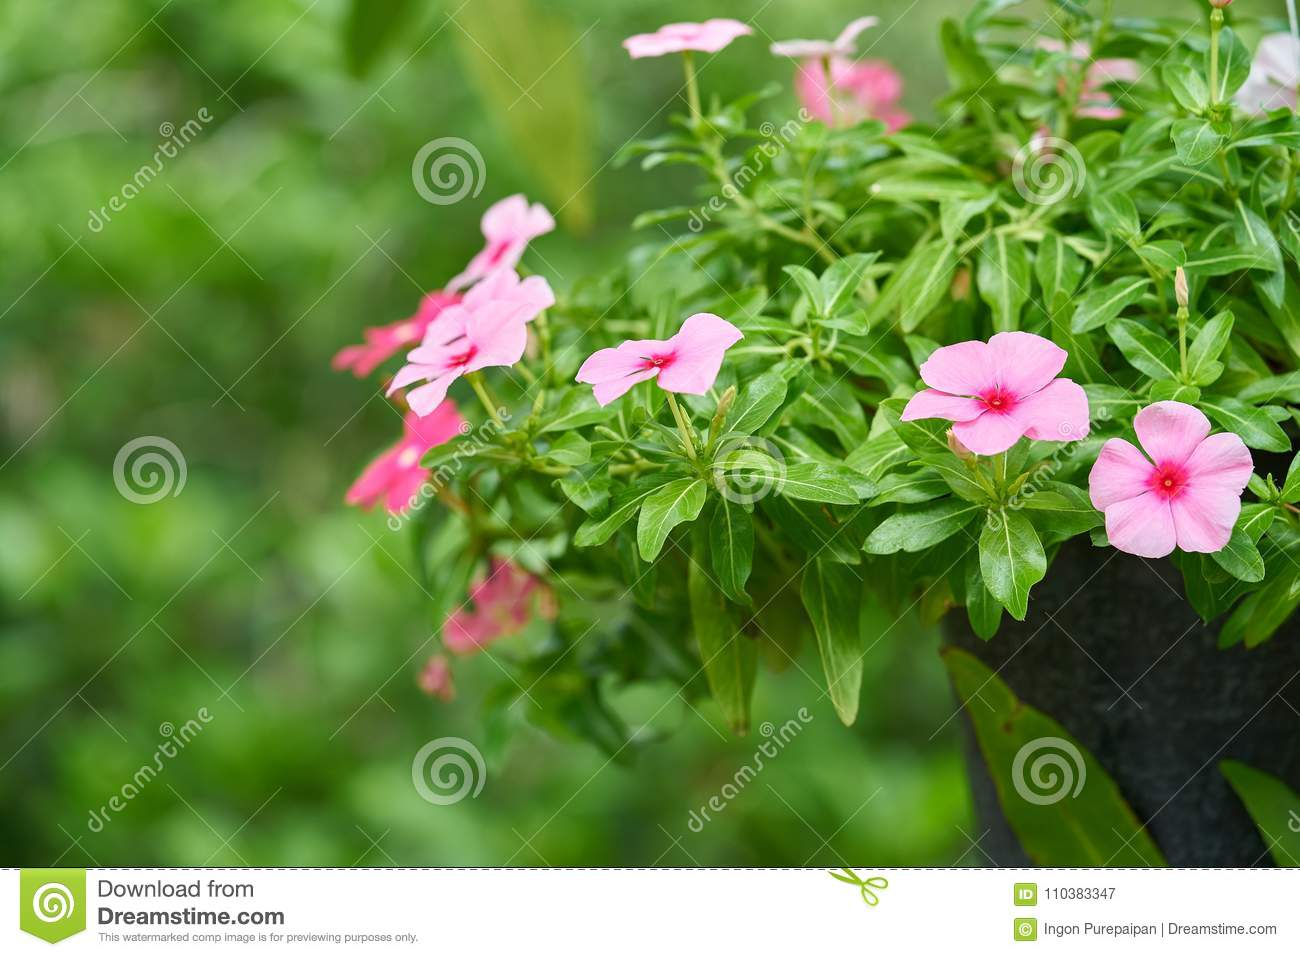 Flower In Garden With Blur Green Background Beautiful Pink Flowers